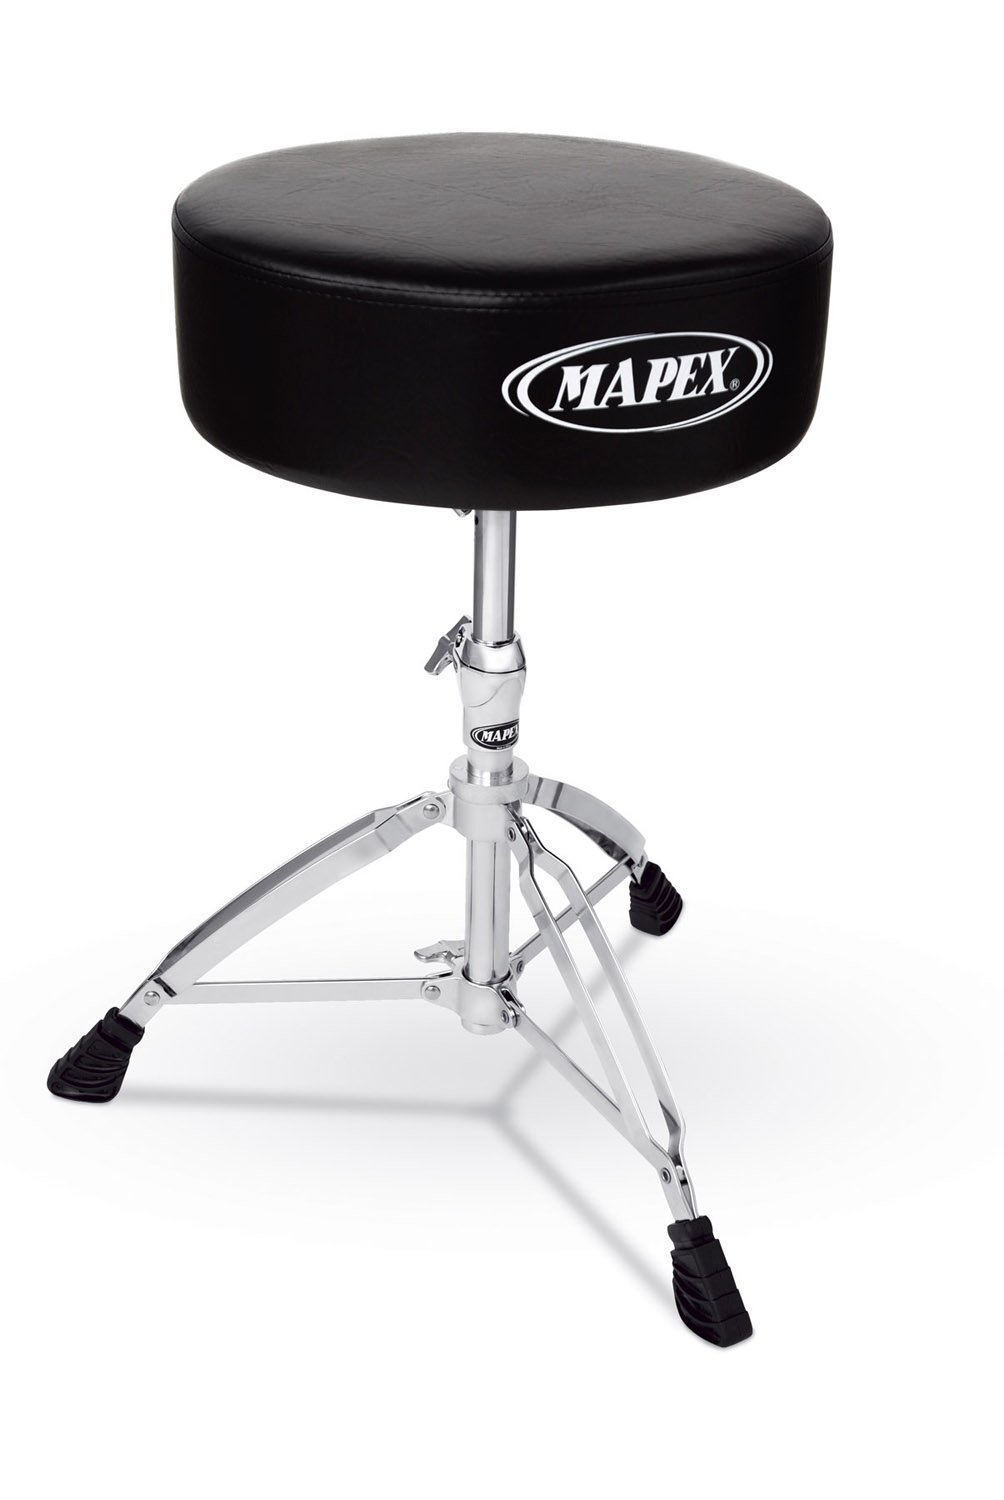 Mapex Double Brace Thick Cushion - Heavy Duty Drum Throne by Mapex (Image #1)